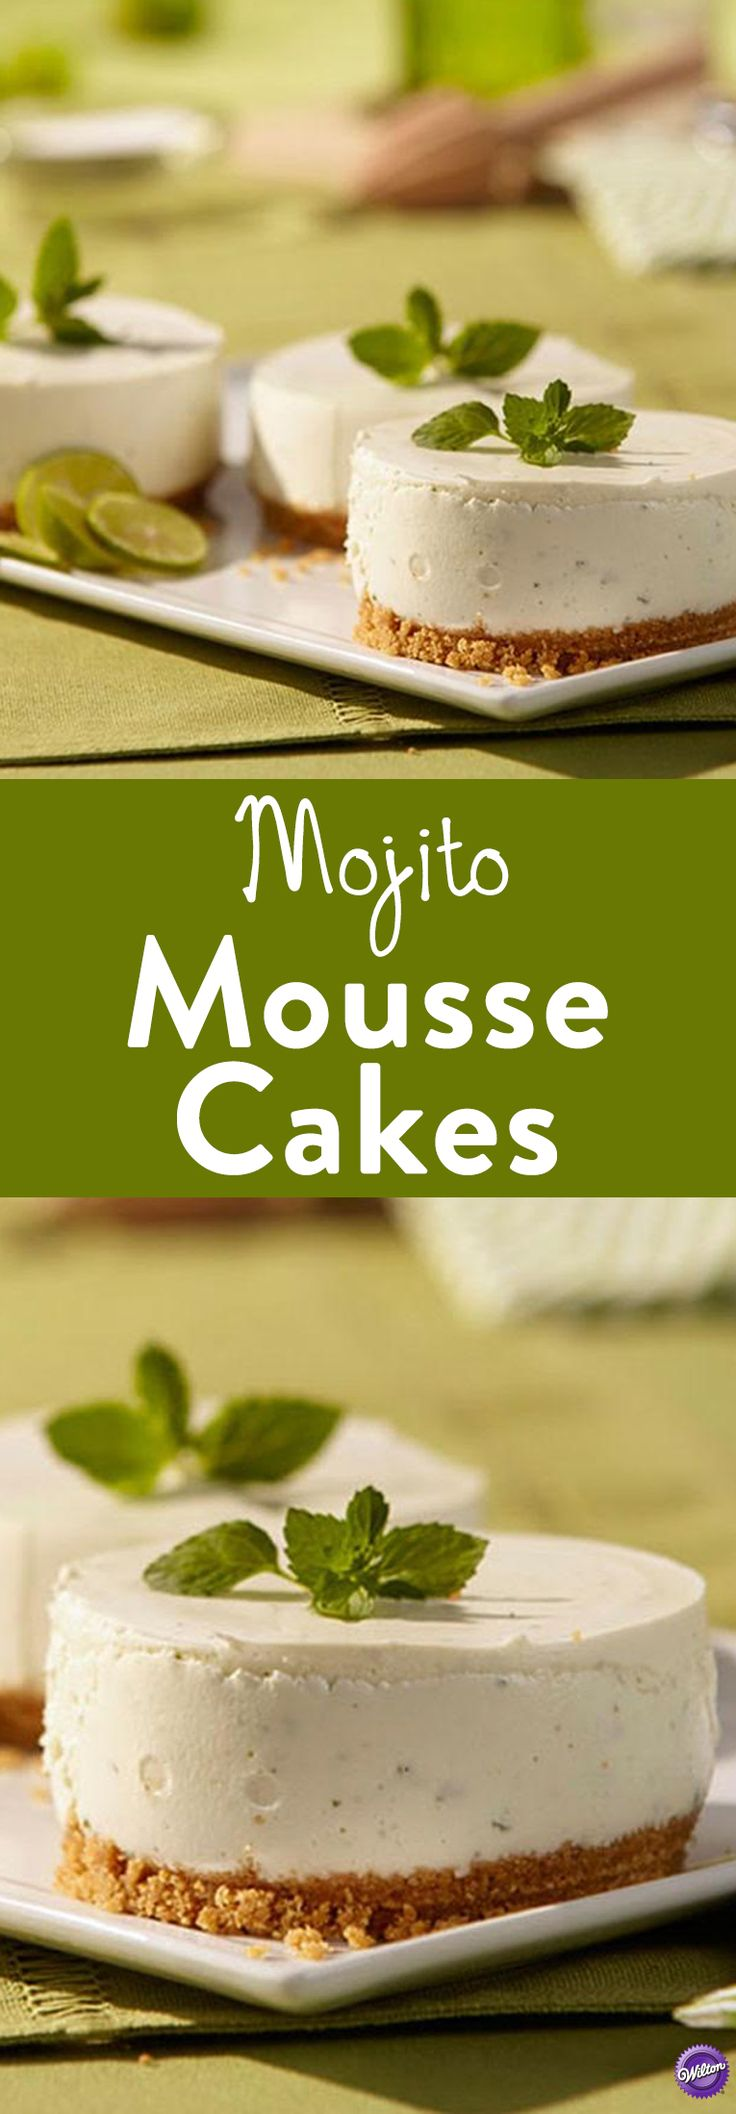 Mojito Mousse Cakes Recipe - Have your cake-tail and eat it, too with a mini mojito mousse cake. Start with rum, lime and aromatic mint for classic mojito flavor. Great to serve especially for summer celebrations!